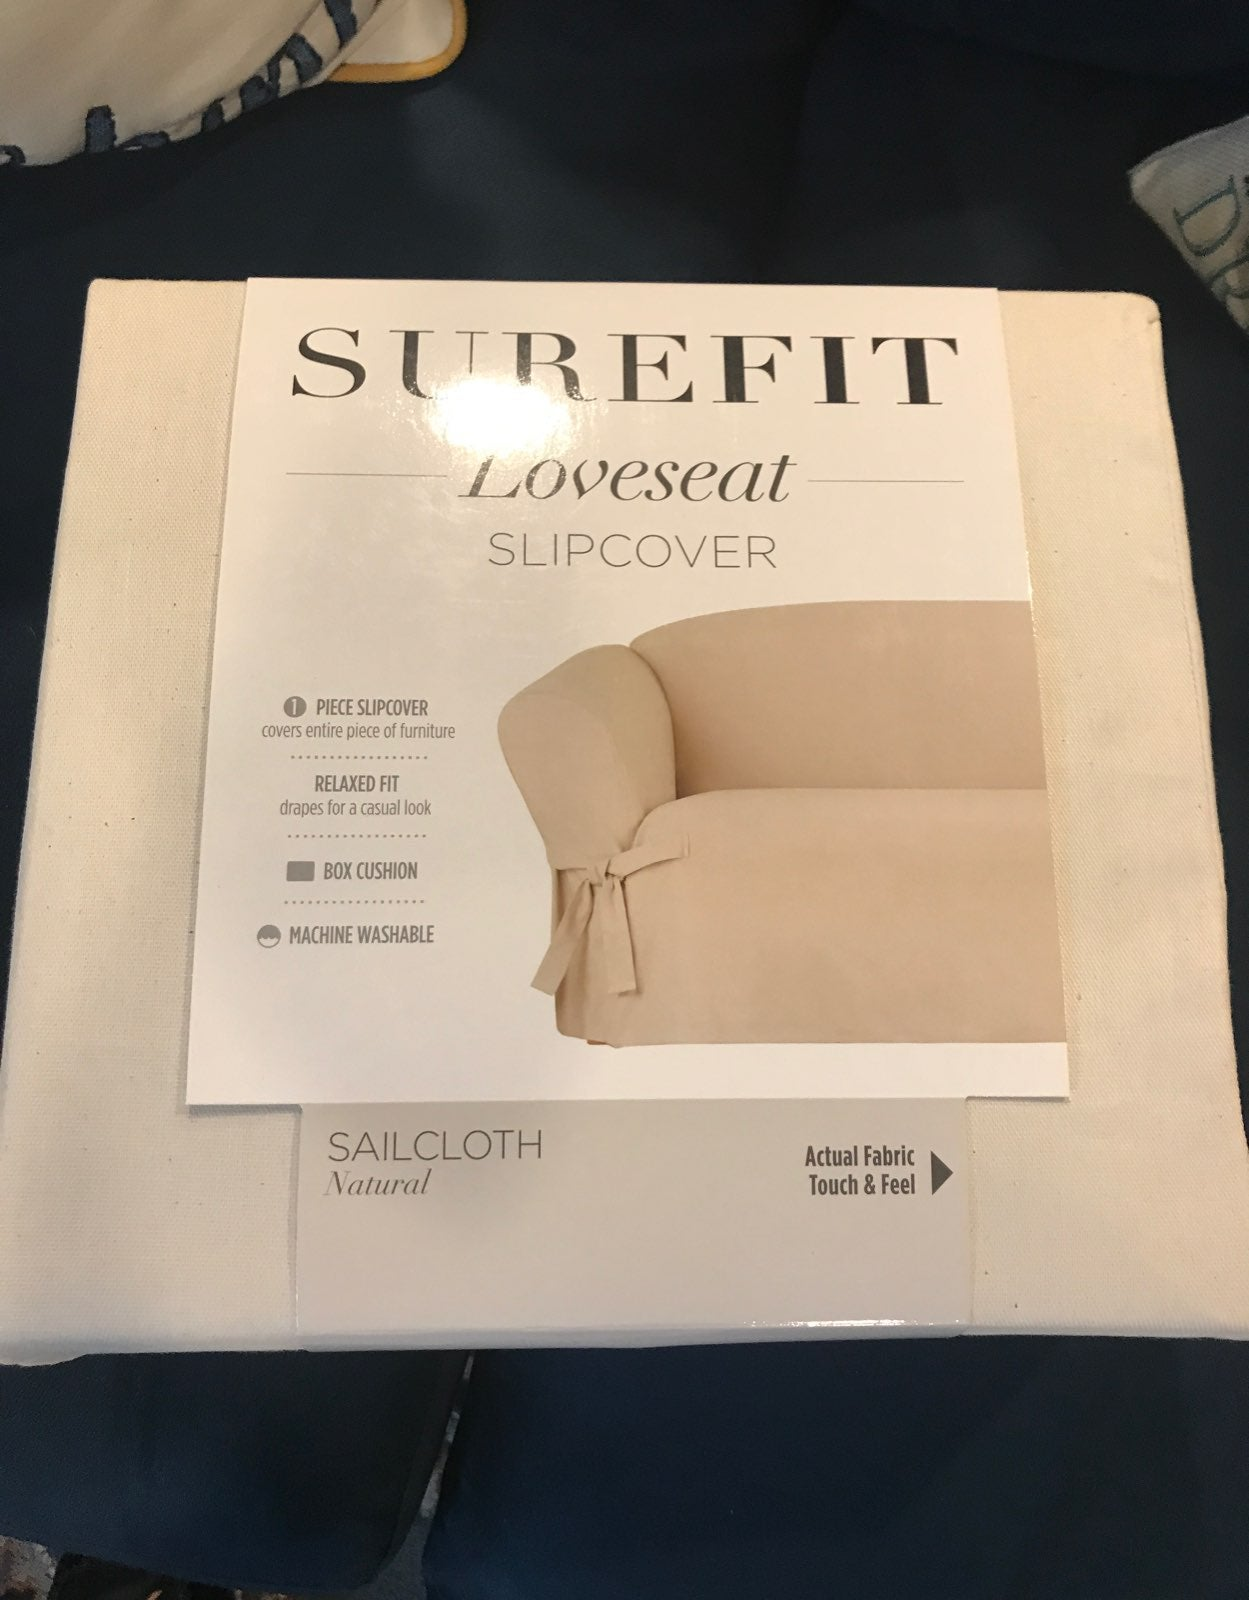 Loveseat slipcover